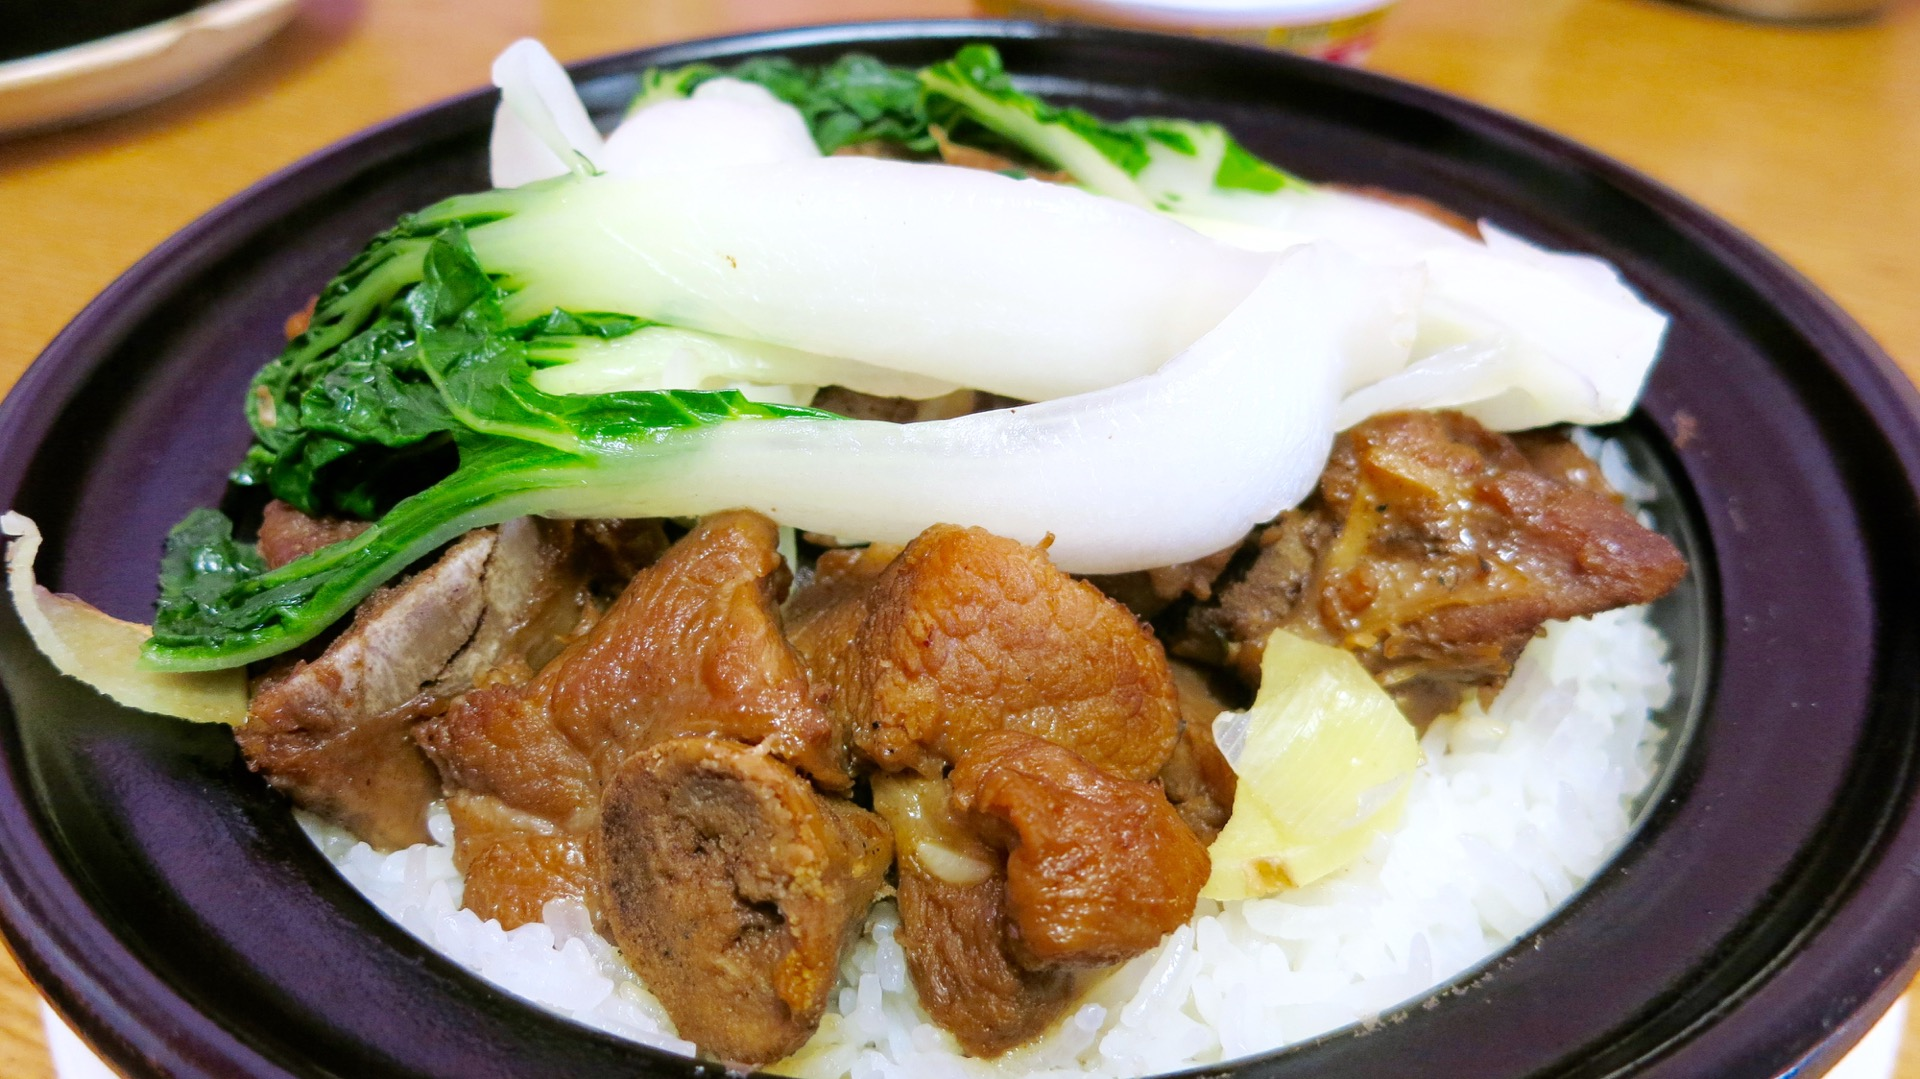 Gum Wah's pork spareribs in black bean sauce over sticky rice is an affordable and filling lunch.